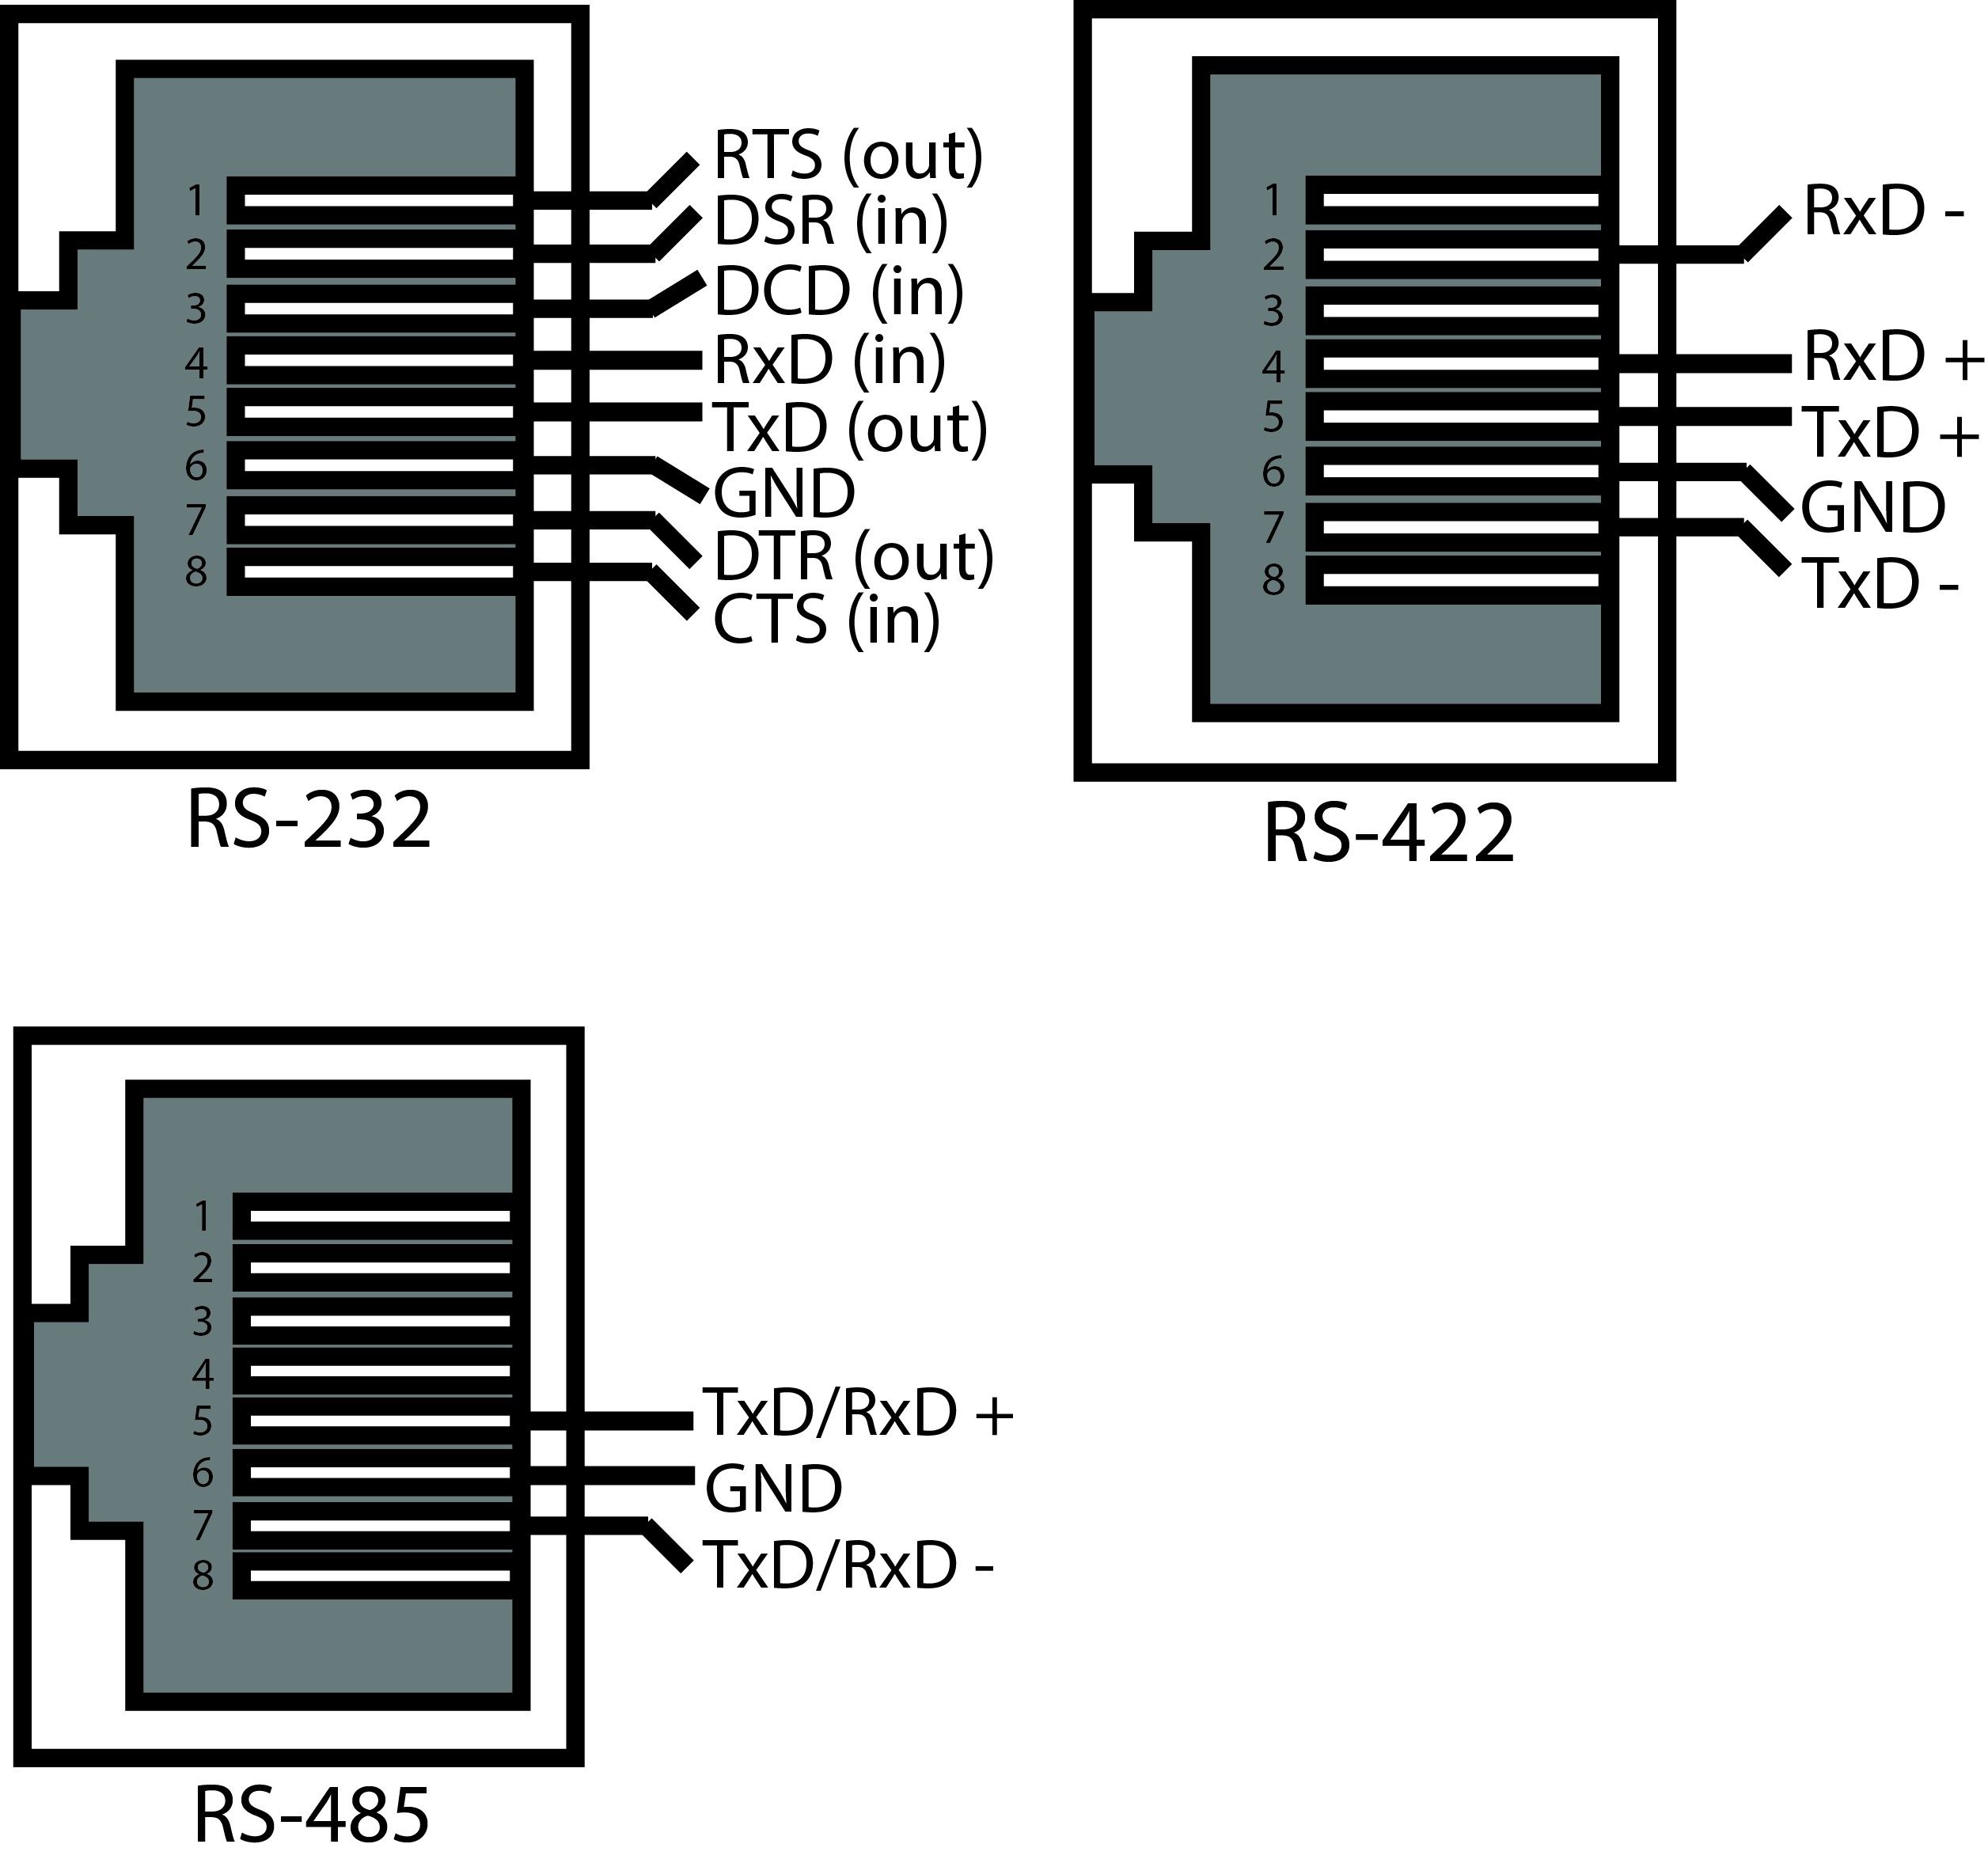 Modbus Rs485 Wiring    Diagram      My Wiring    DIagram